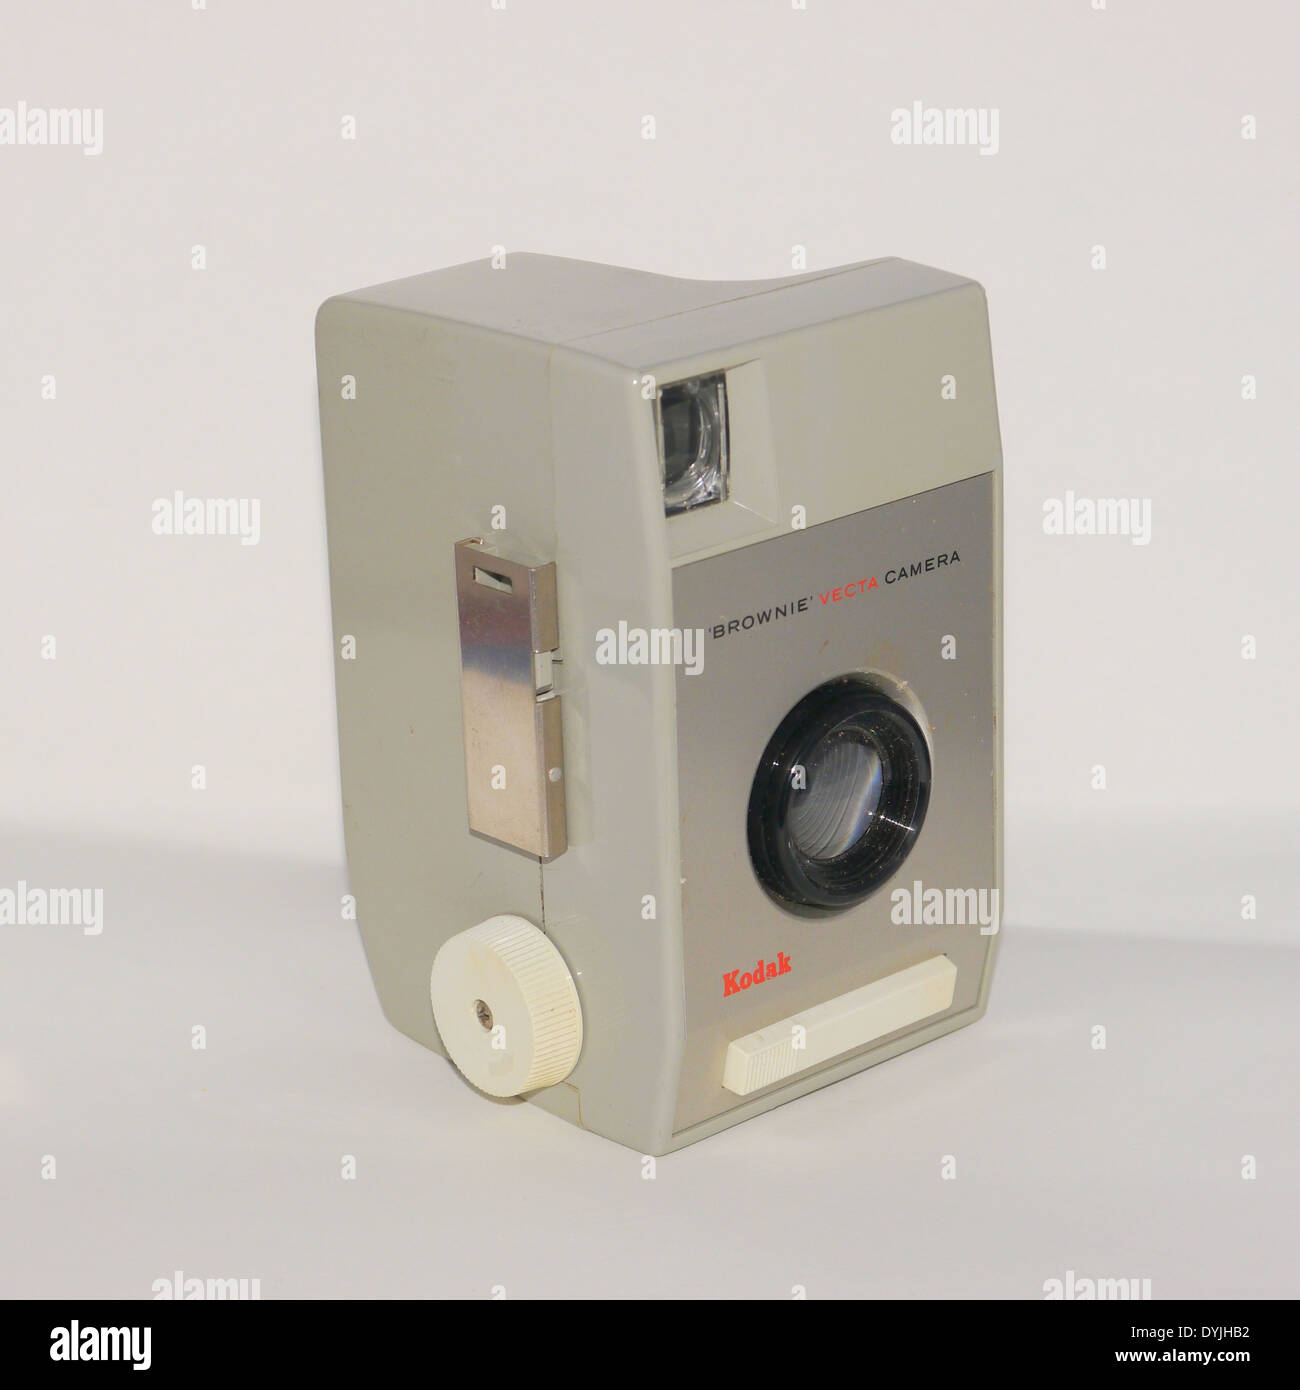 Kodak Brownie 127 film Vecta camera - front view on white background - colour - Stock Image